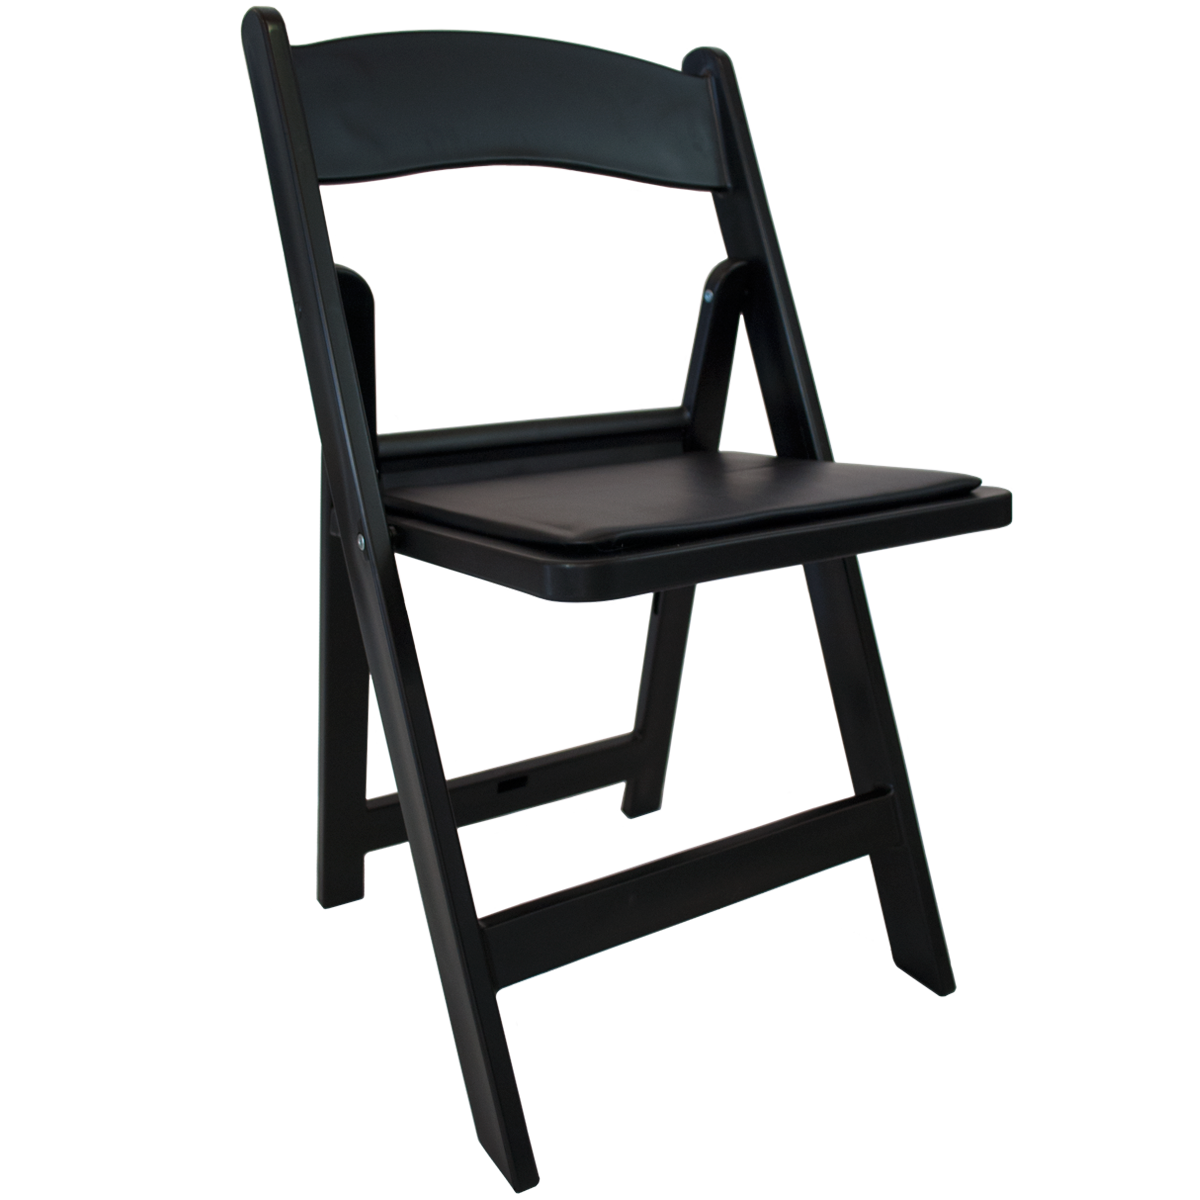 Folding chair png. Padded chairs black celebrations